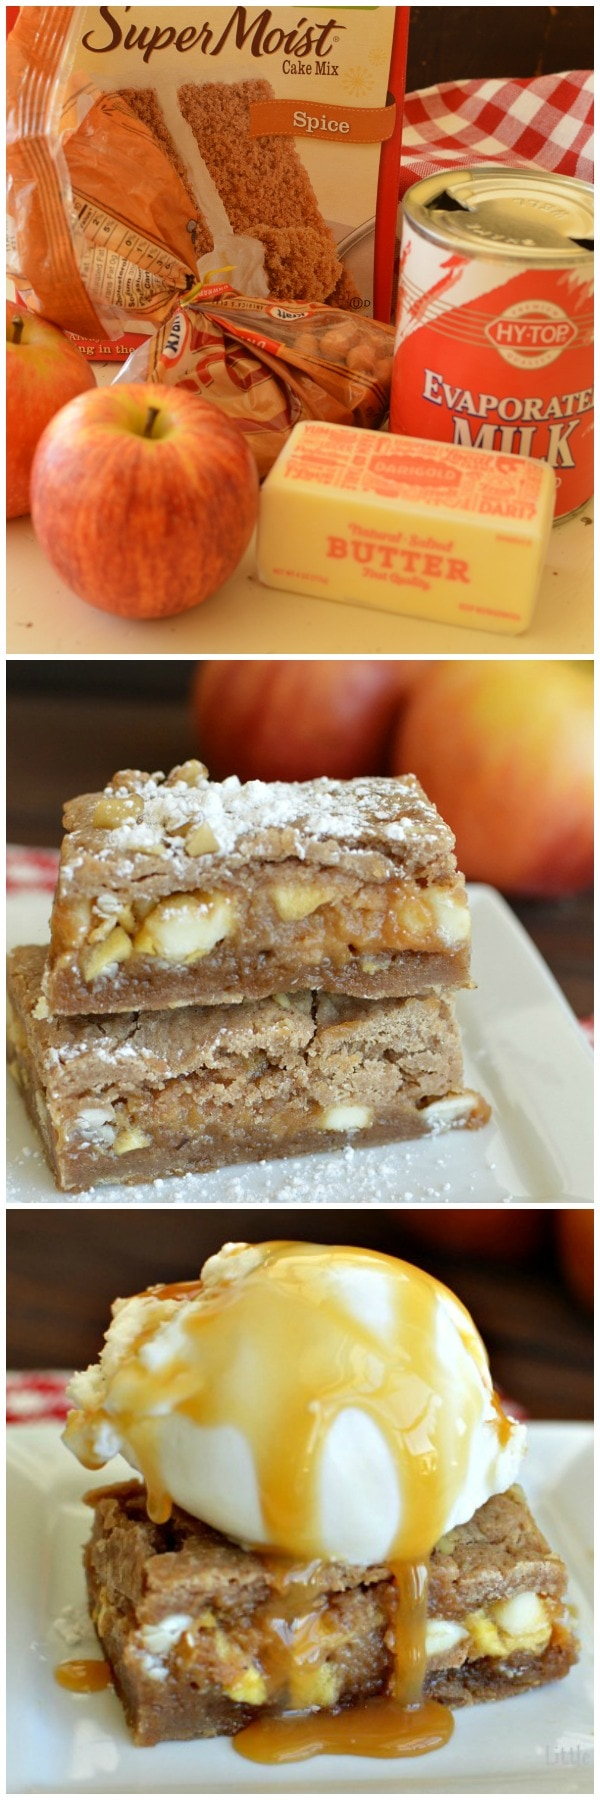 Caramel Apple Blondies! Warm and gooey blondies are delicious served alone, or extra decadent topped with ice cream and drizzled with extra caramel sauce!  Little Dairy on the Prairie